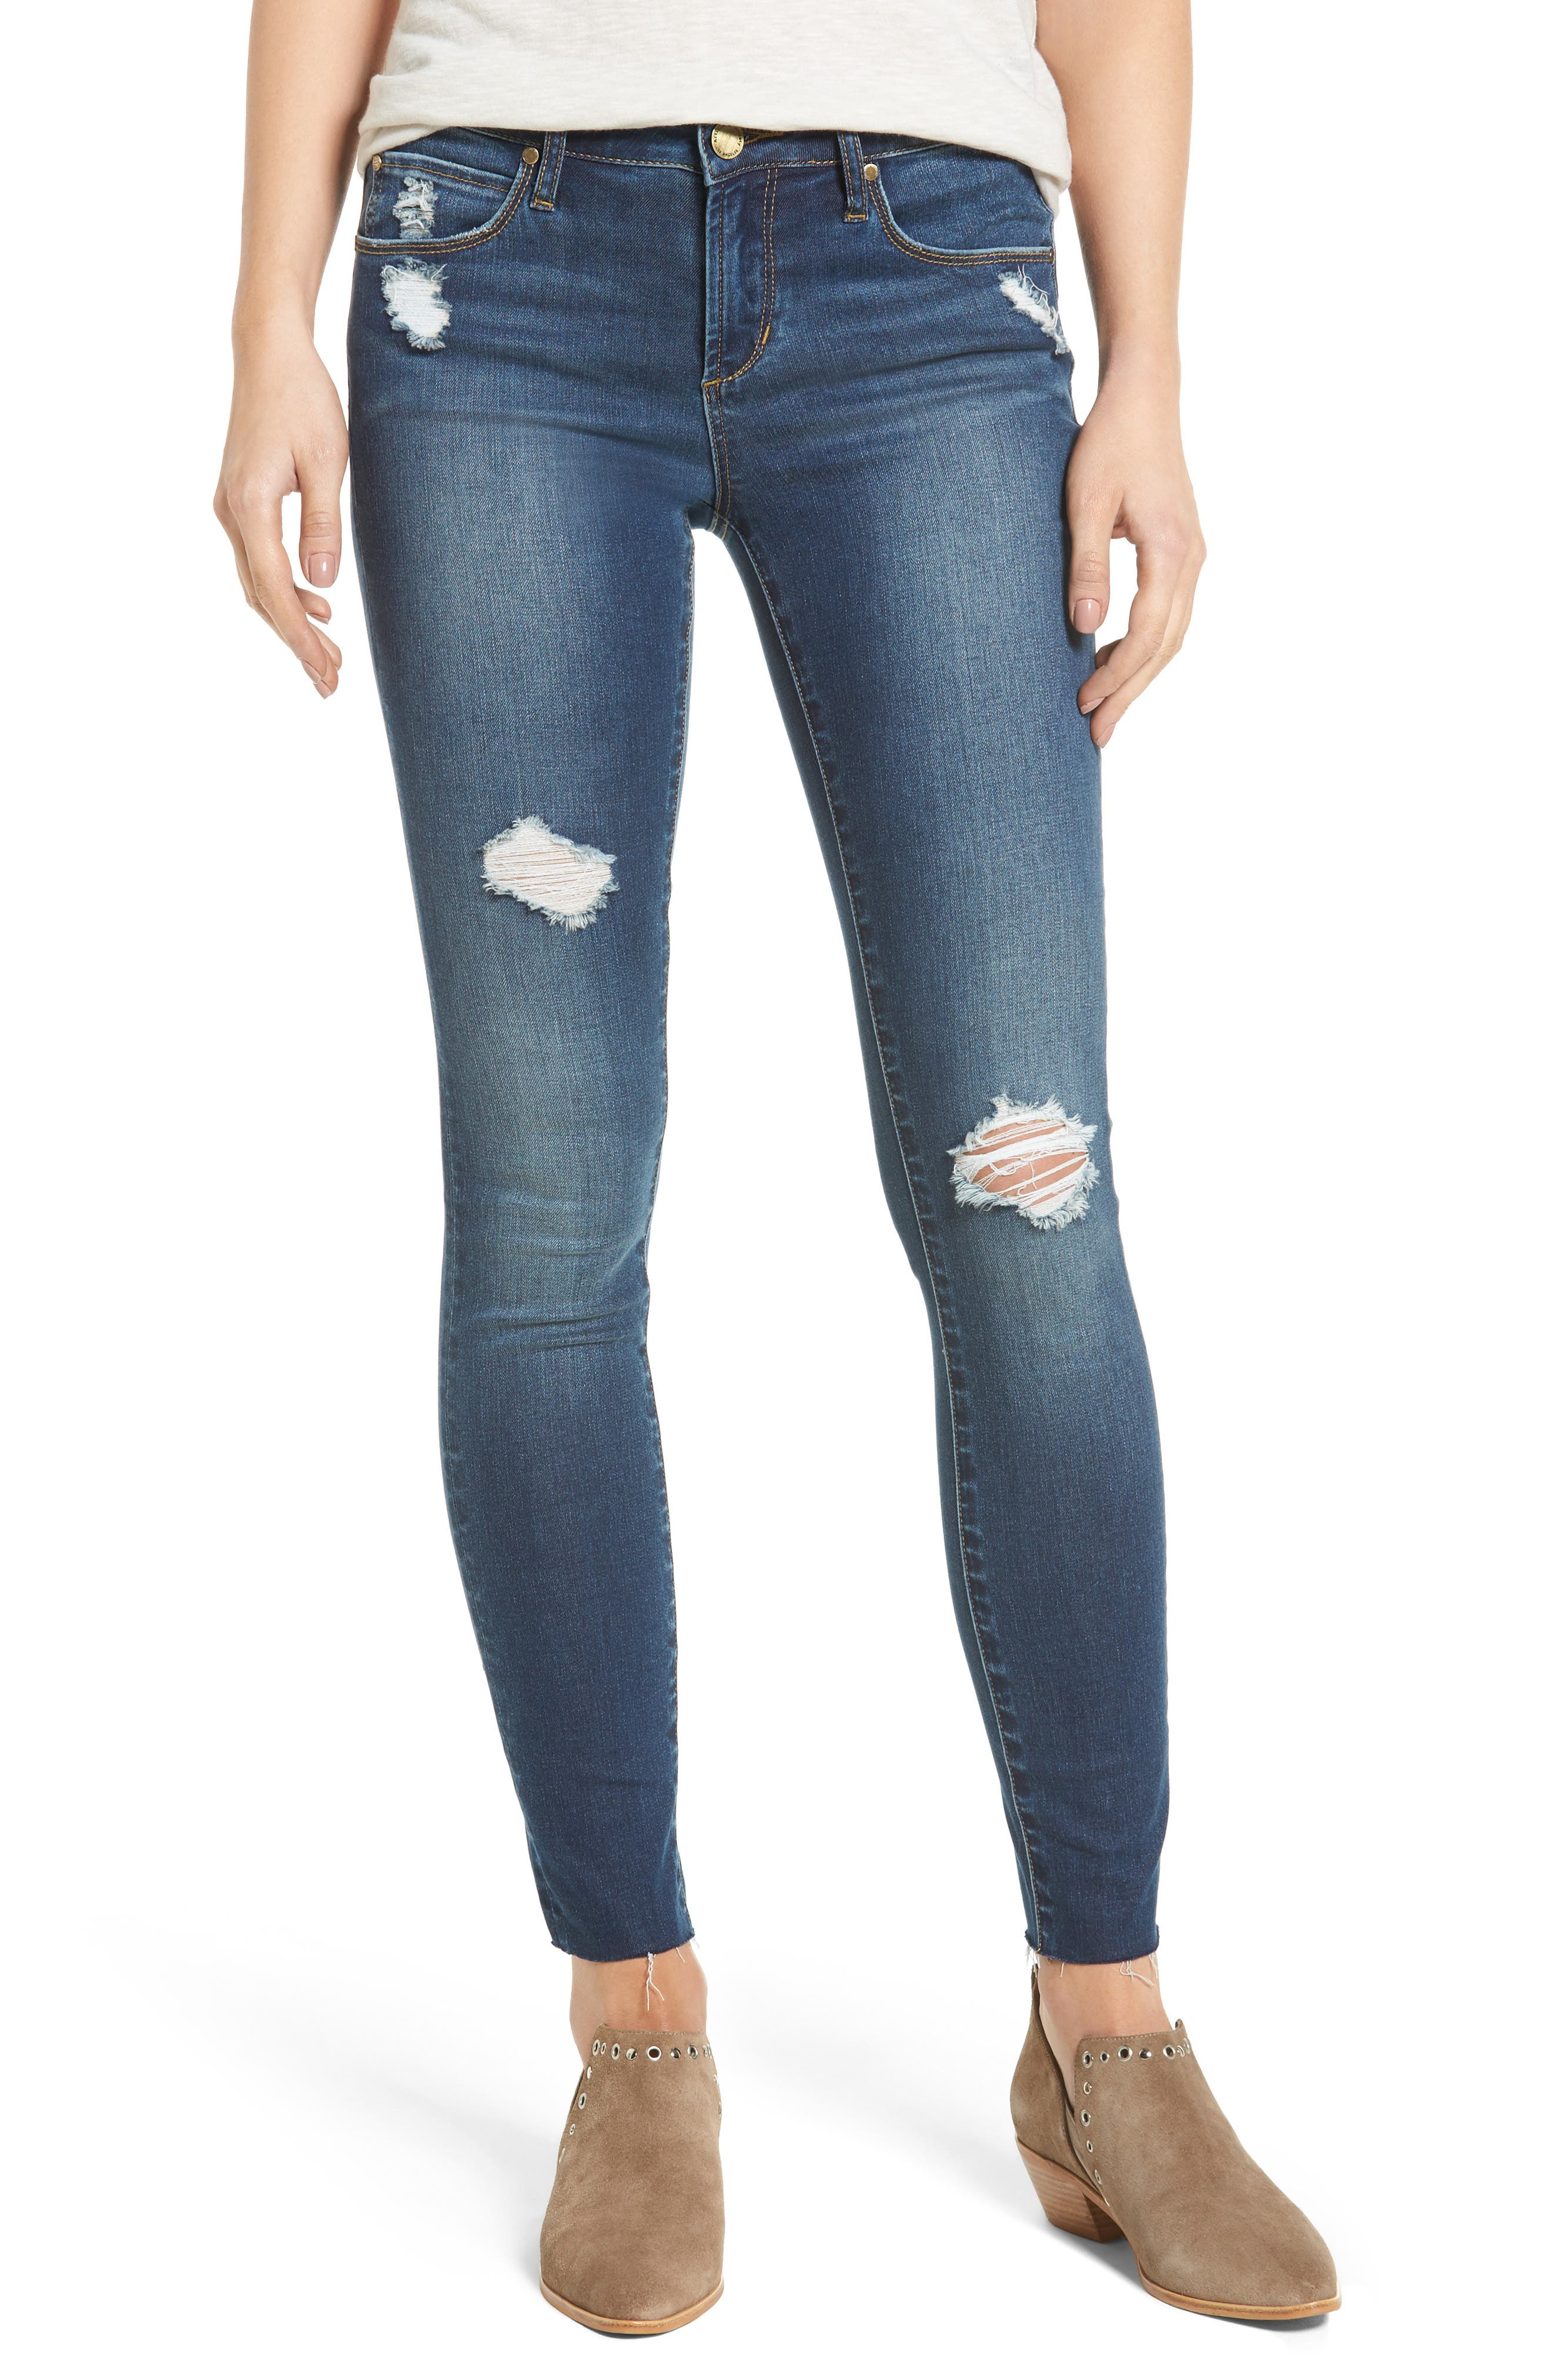 Articles of Society Sarah Skinny Jeans (Vintage)